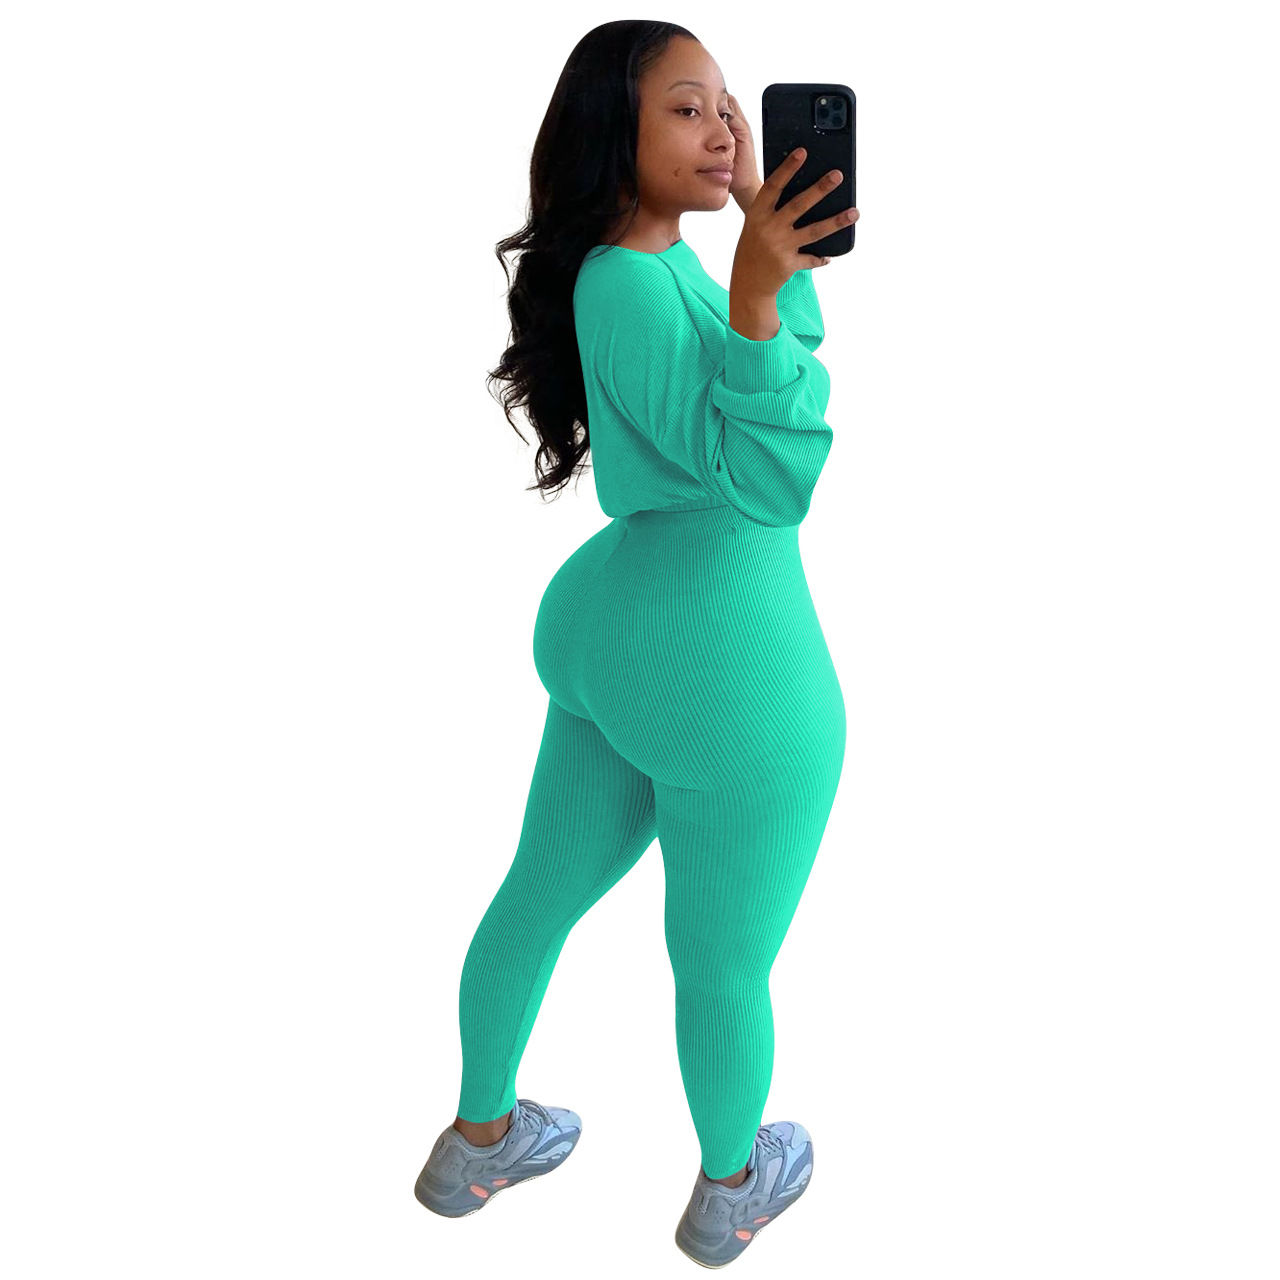 autumn ribbed sports and leisure set NSNK64934